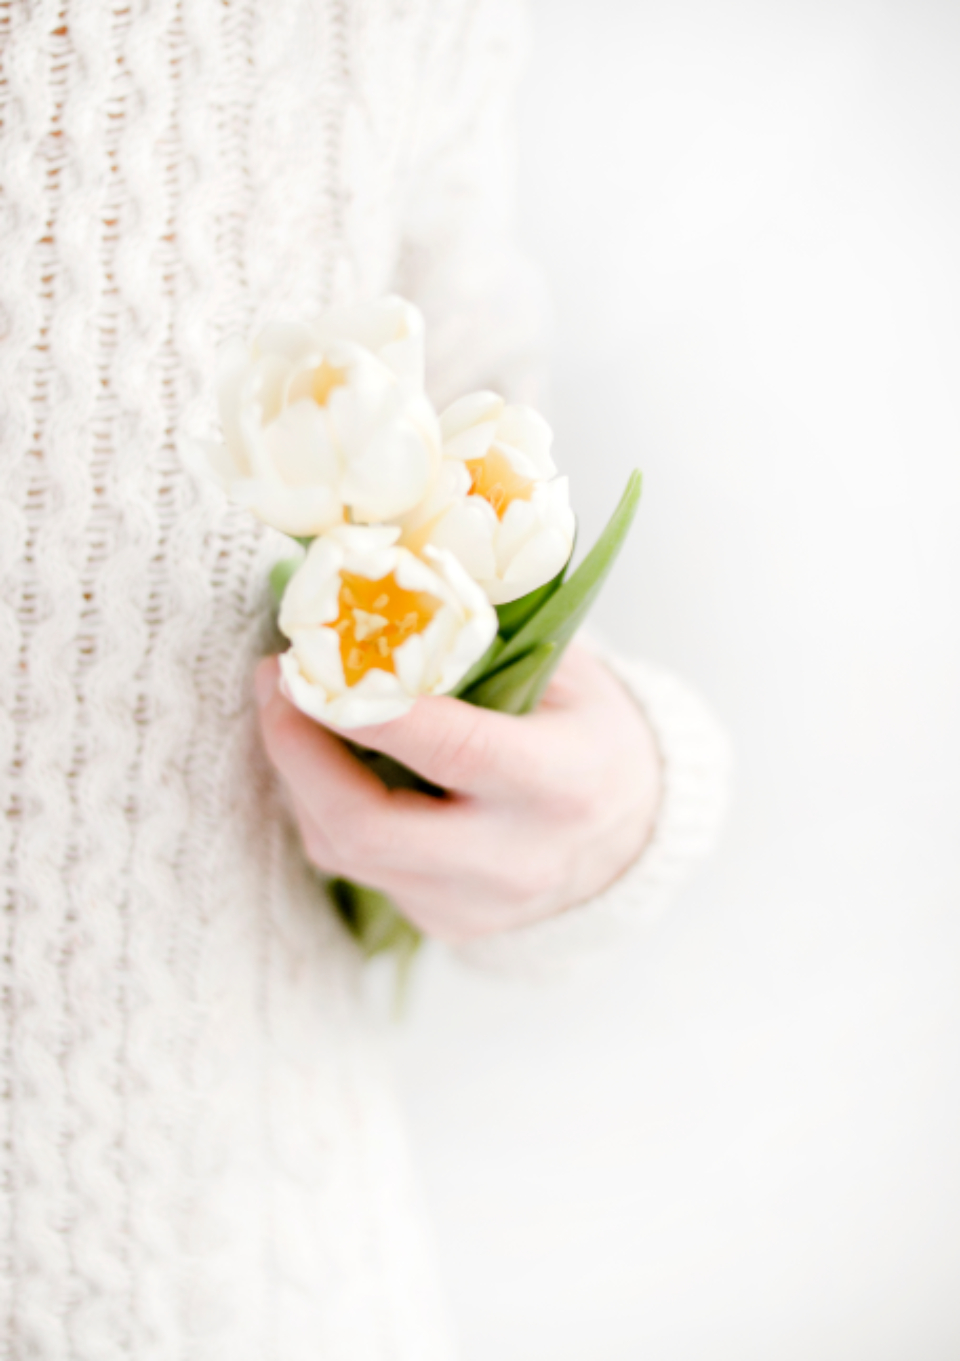 woman holding white flowers nature fauna people female girl yellow hand hold close up